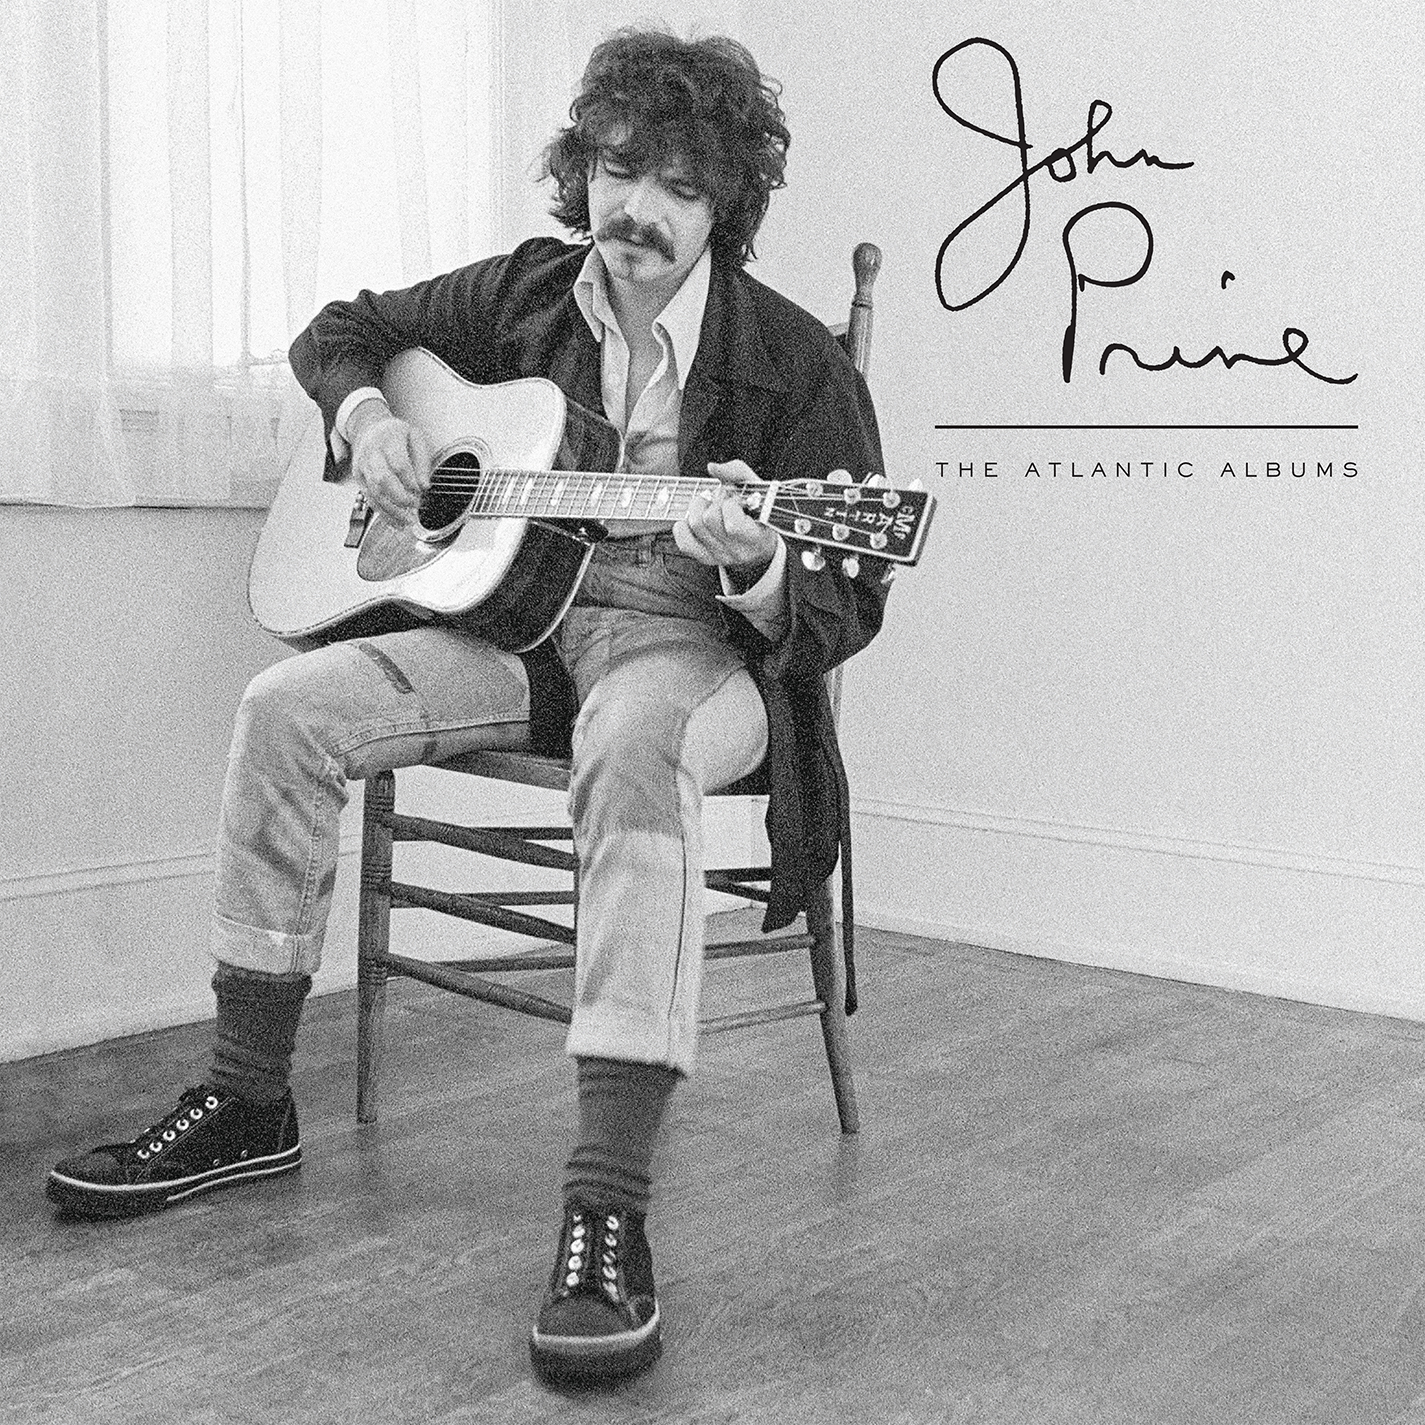 John Prine - Atlantic Albums [RSD Drops Aug 2020]